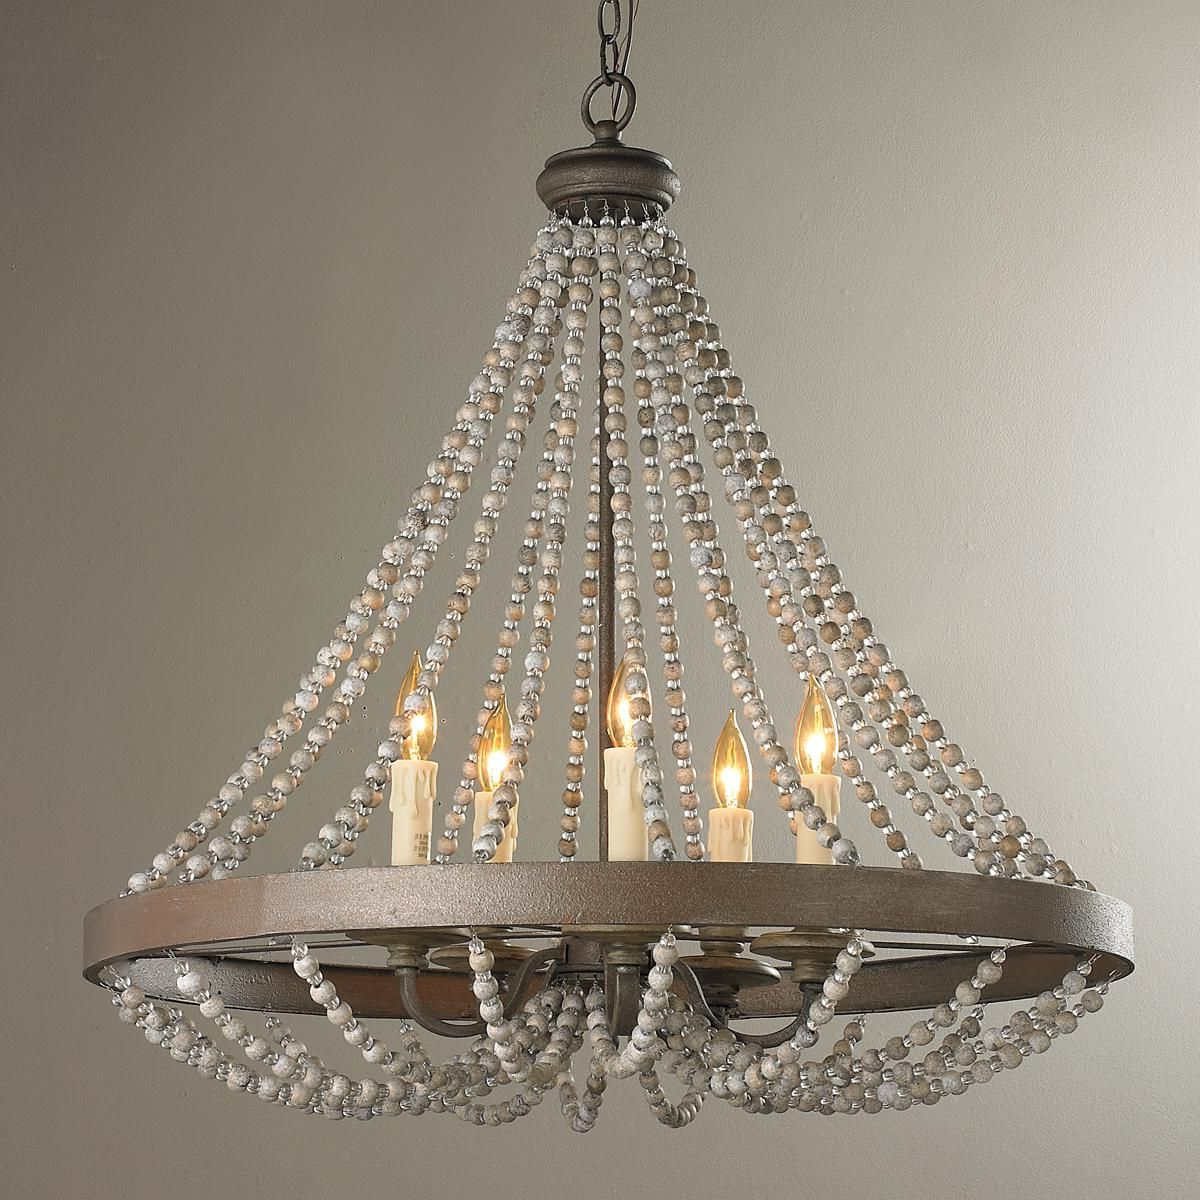 Rustic Designs In Intended For Favorite Ladonna 5 Light Novelty Chandeliers (View 17 of 20)